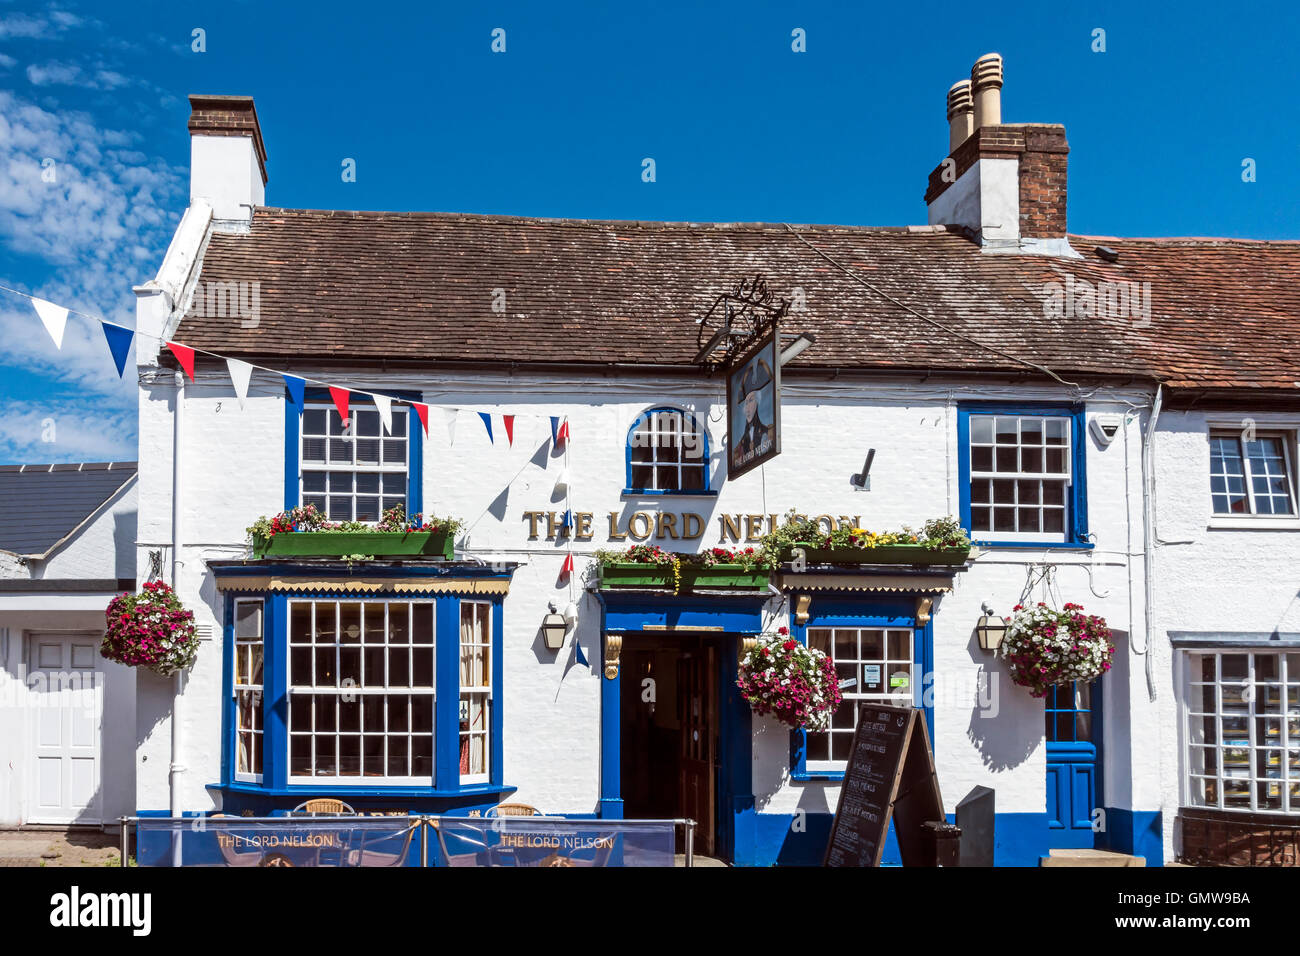 The Lord Nelson pub in High Street Hythe Southampton England - Stock Image